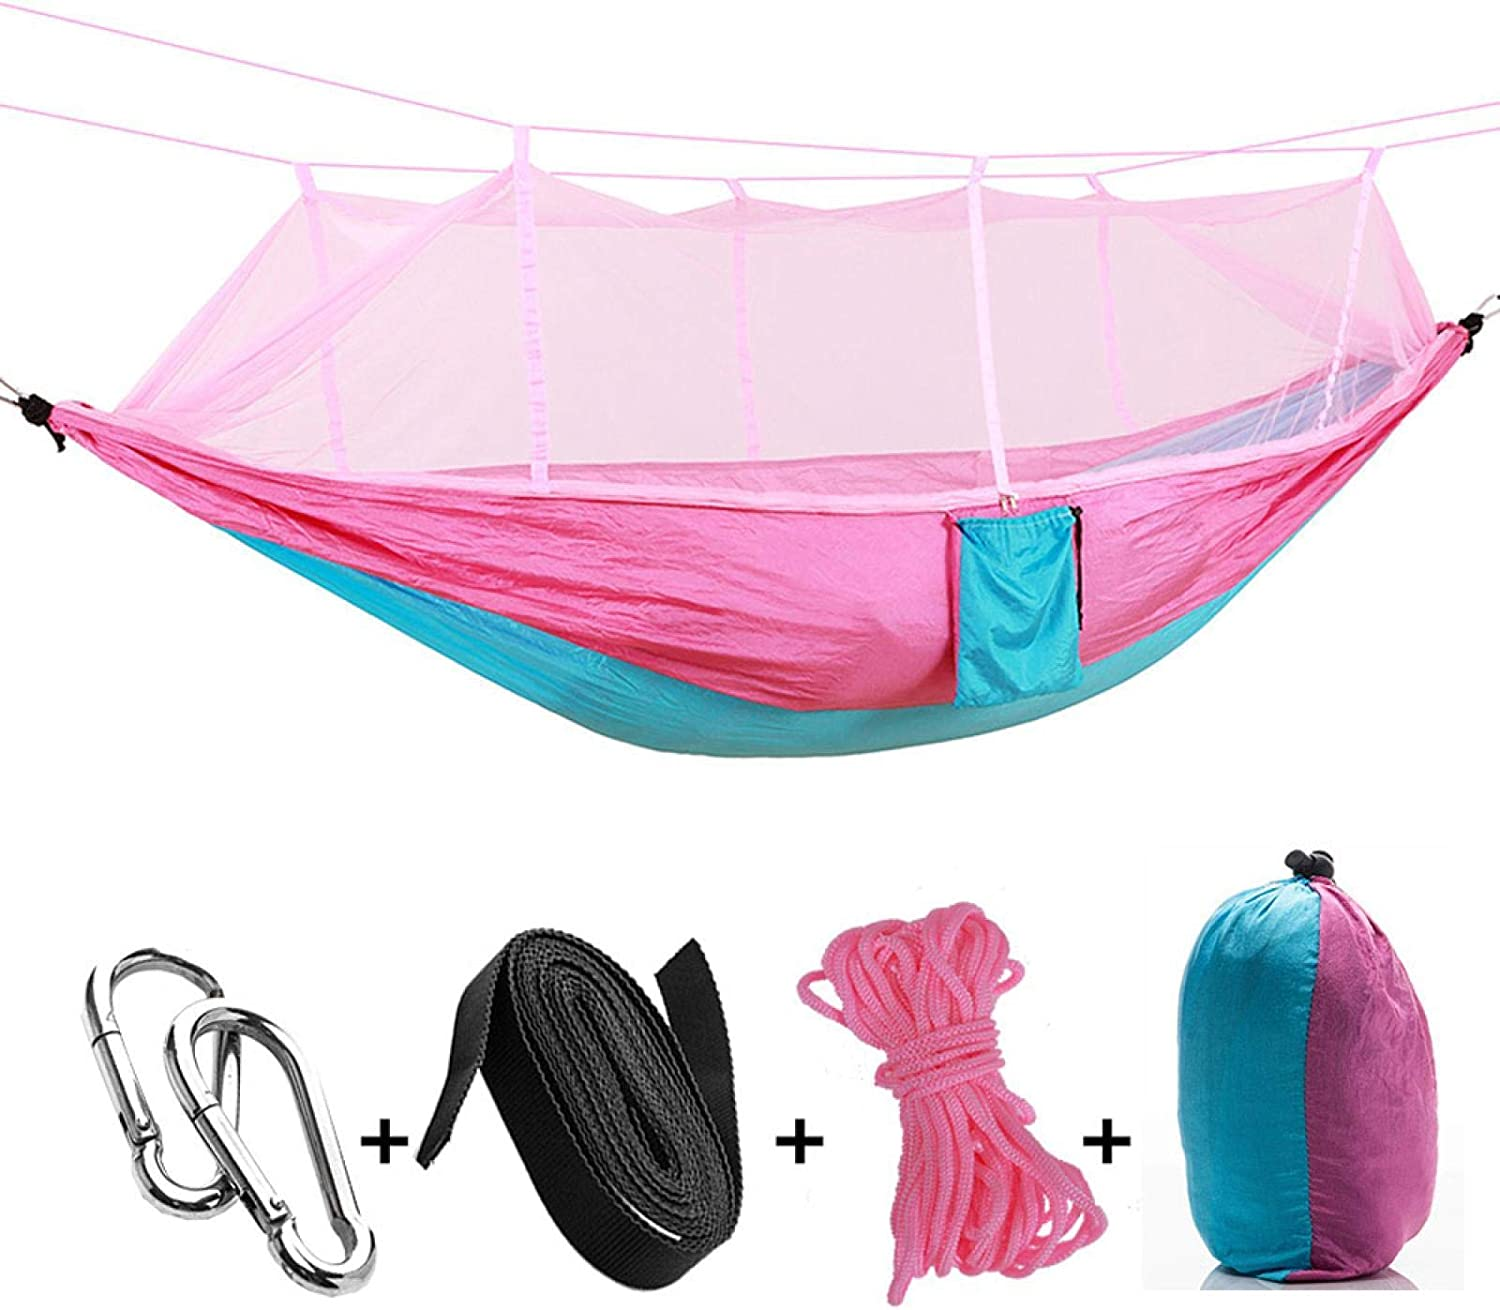 Lightweight Courier Max 74% OFF shipping free Hammock Outdoor Camping Nets Lightw Mosquito